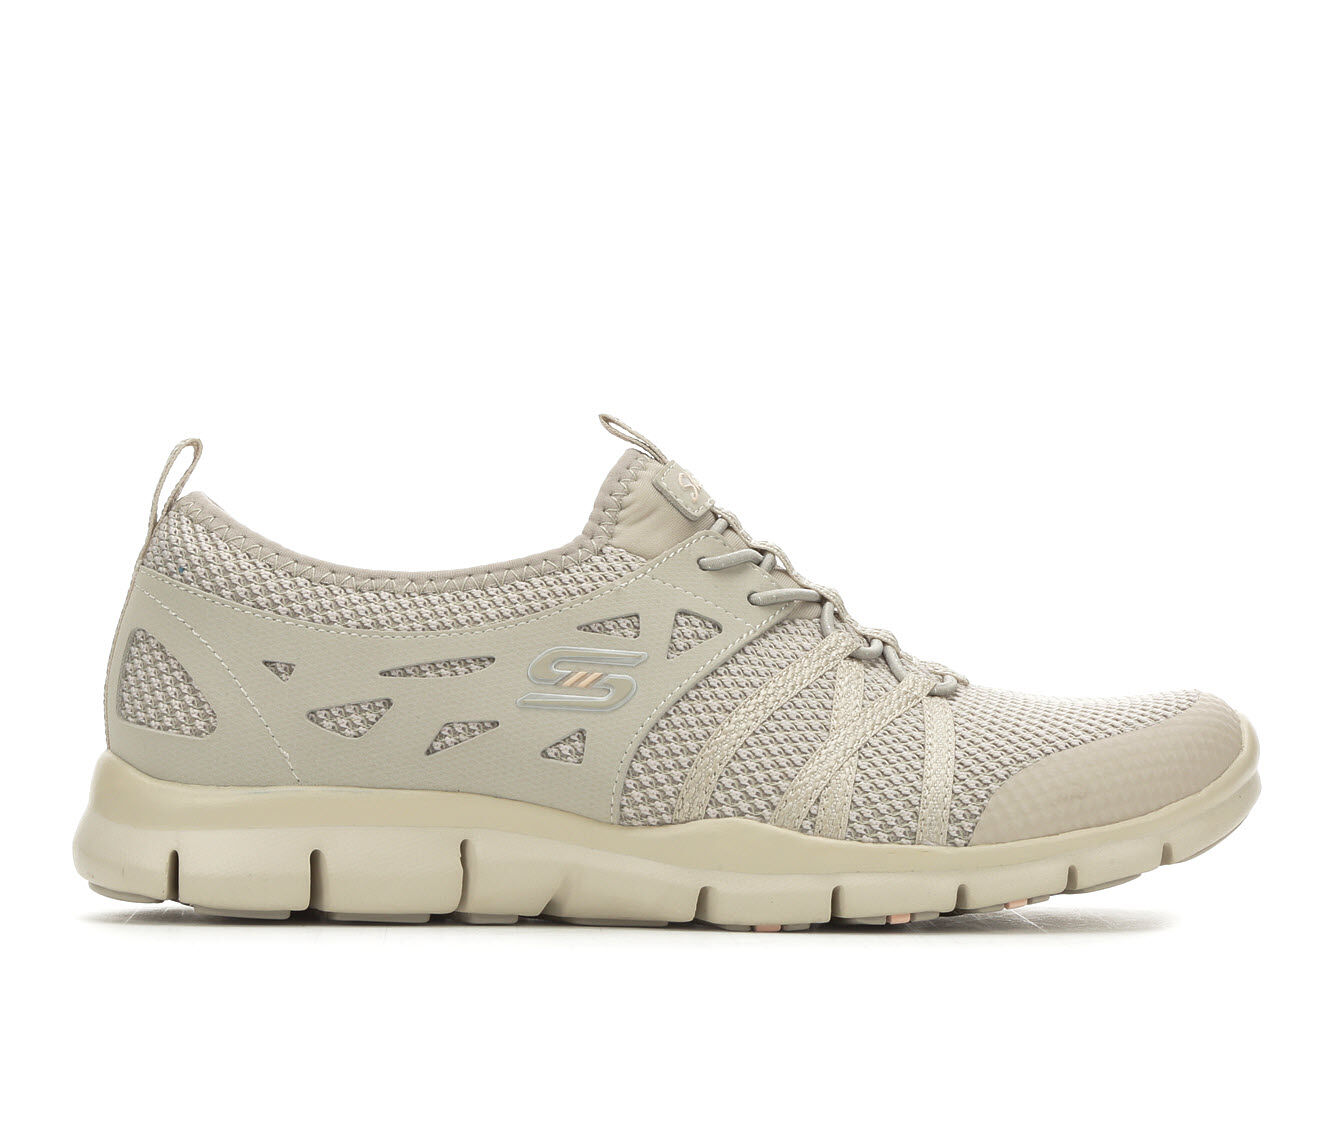 Women's Skechers What A Sight 23360 Slip-On Sneakers Taupe